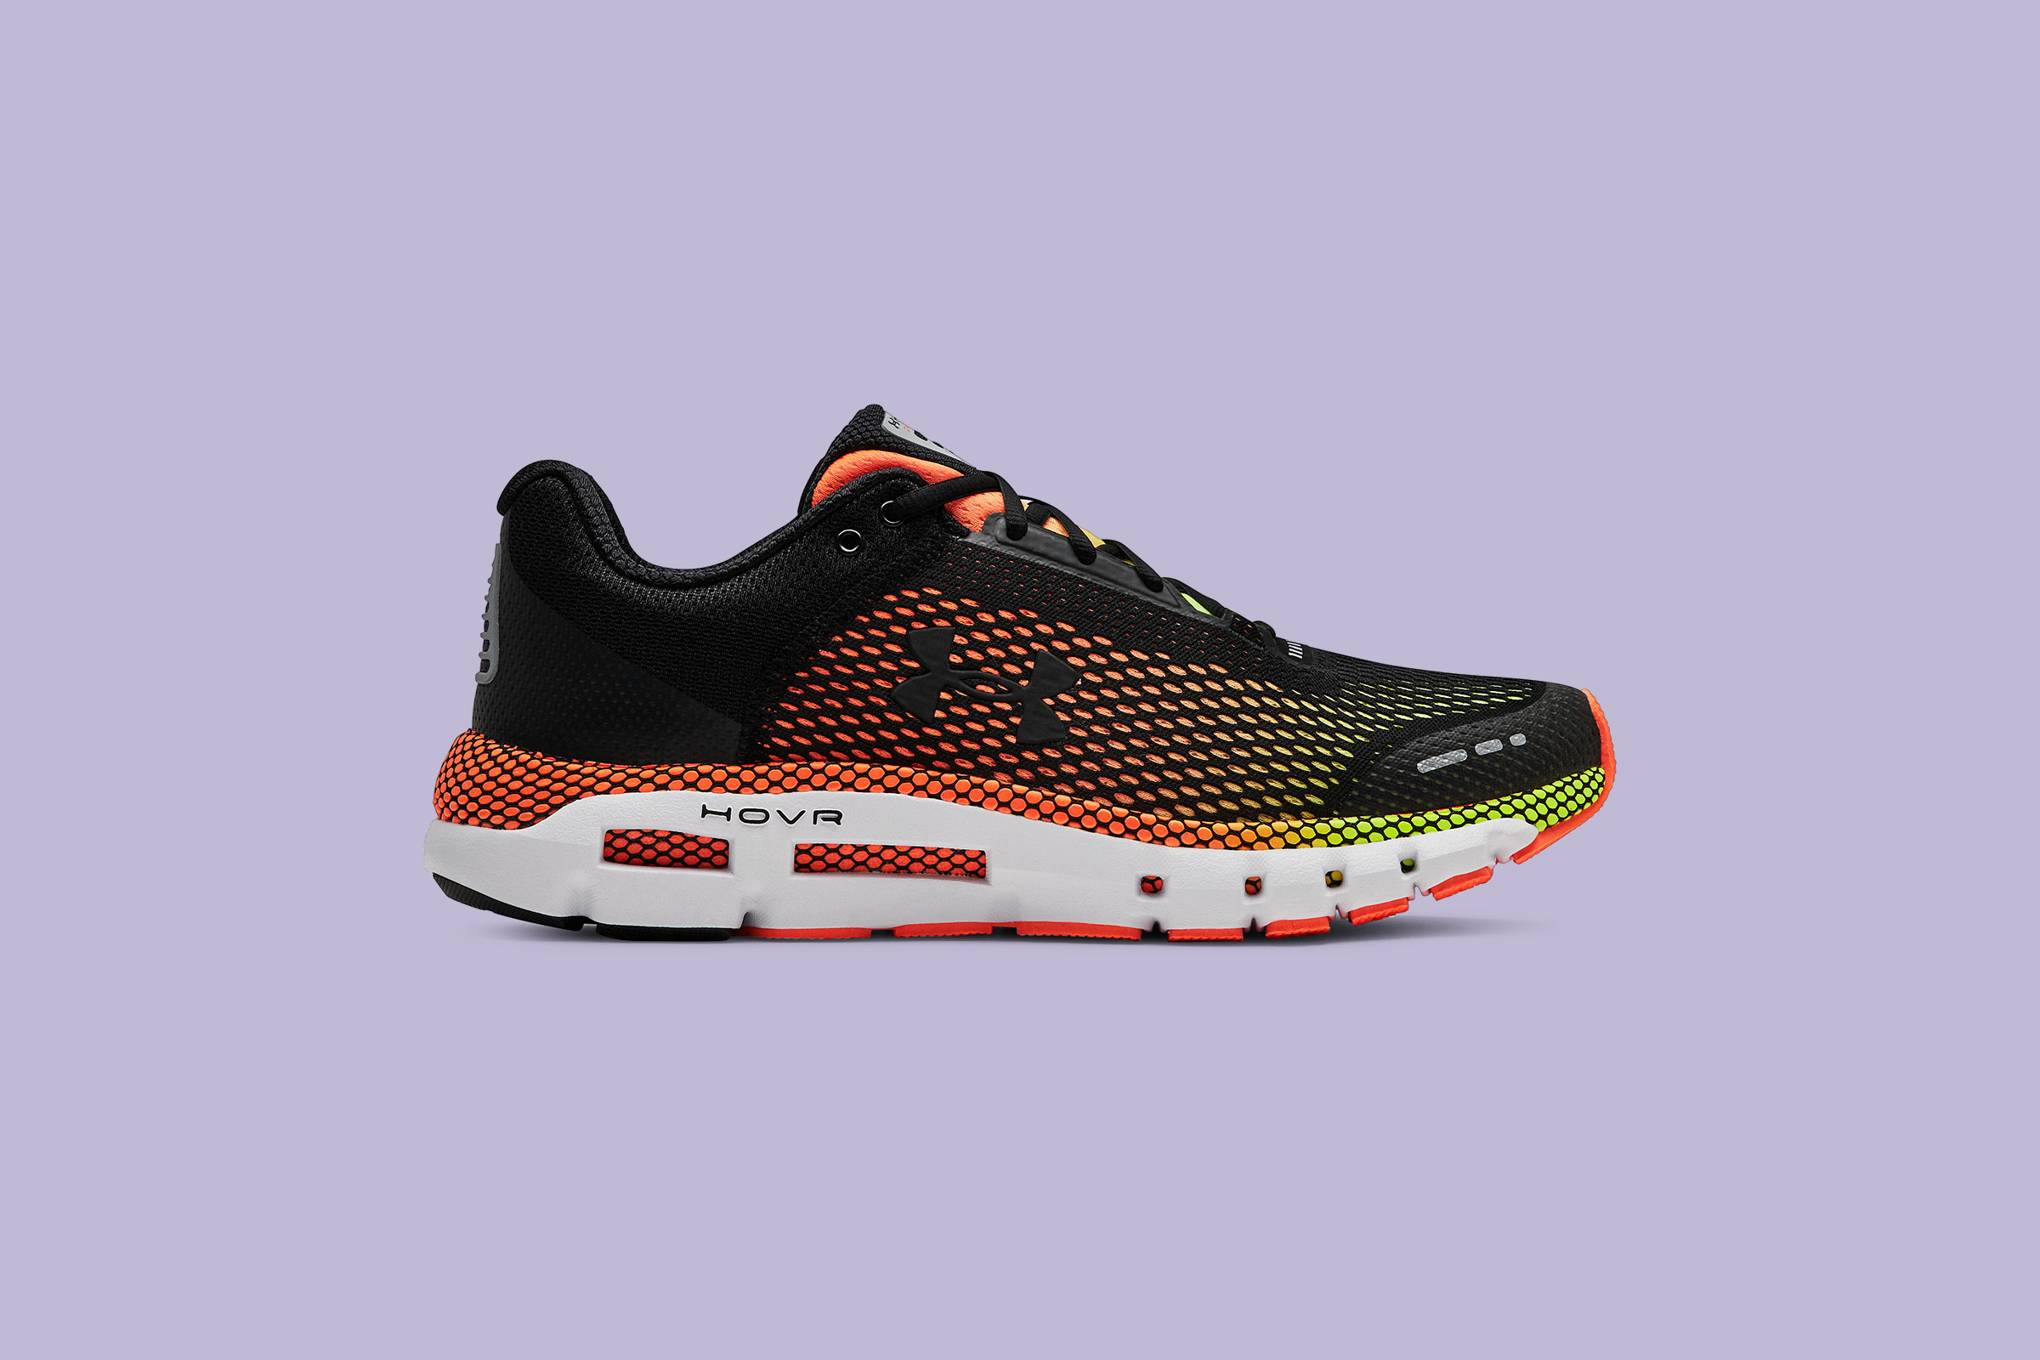 998faed5d4fbc The best running shoes you can buy in 2019